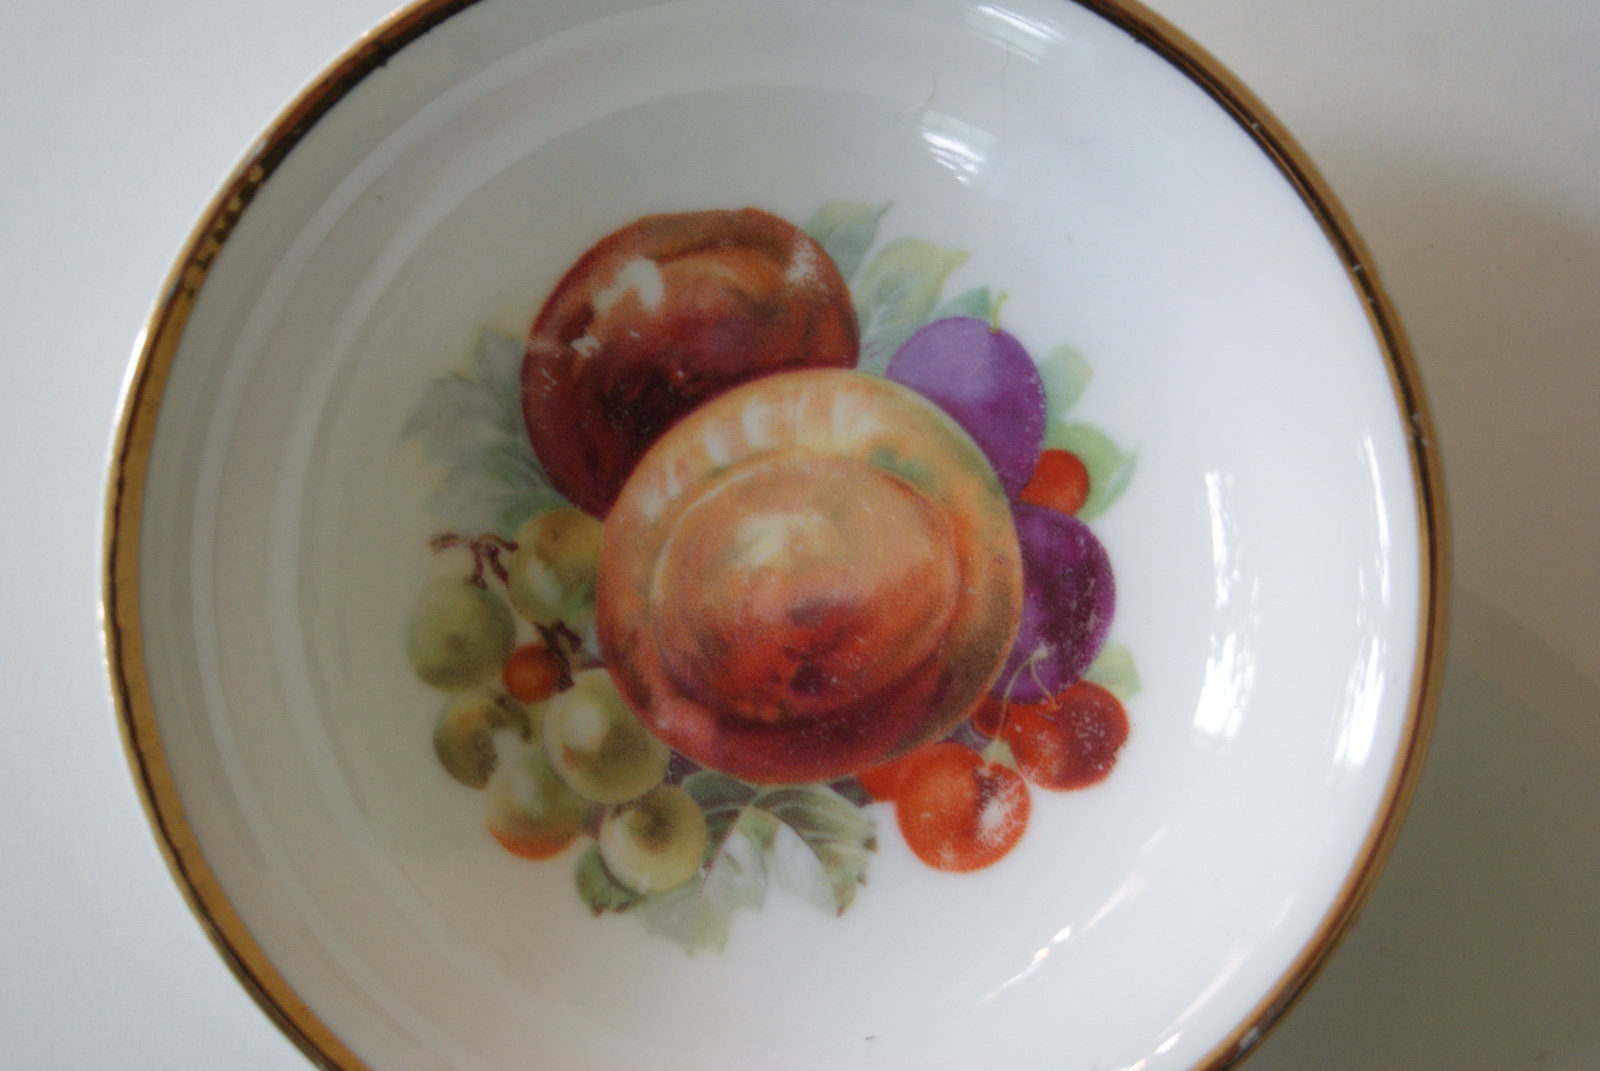 Porsgrund bowl with fruits - plums, peaches, cherries and grapes